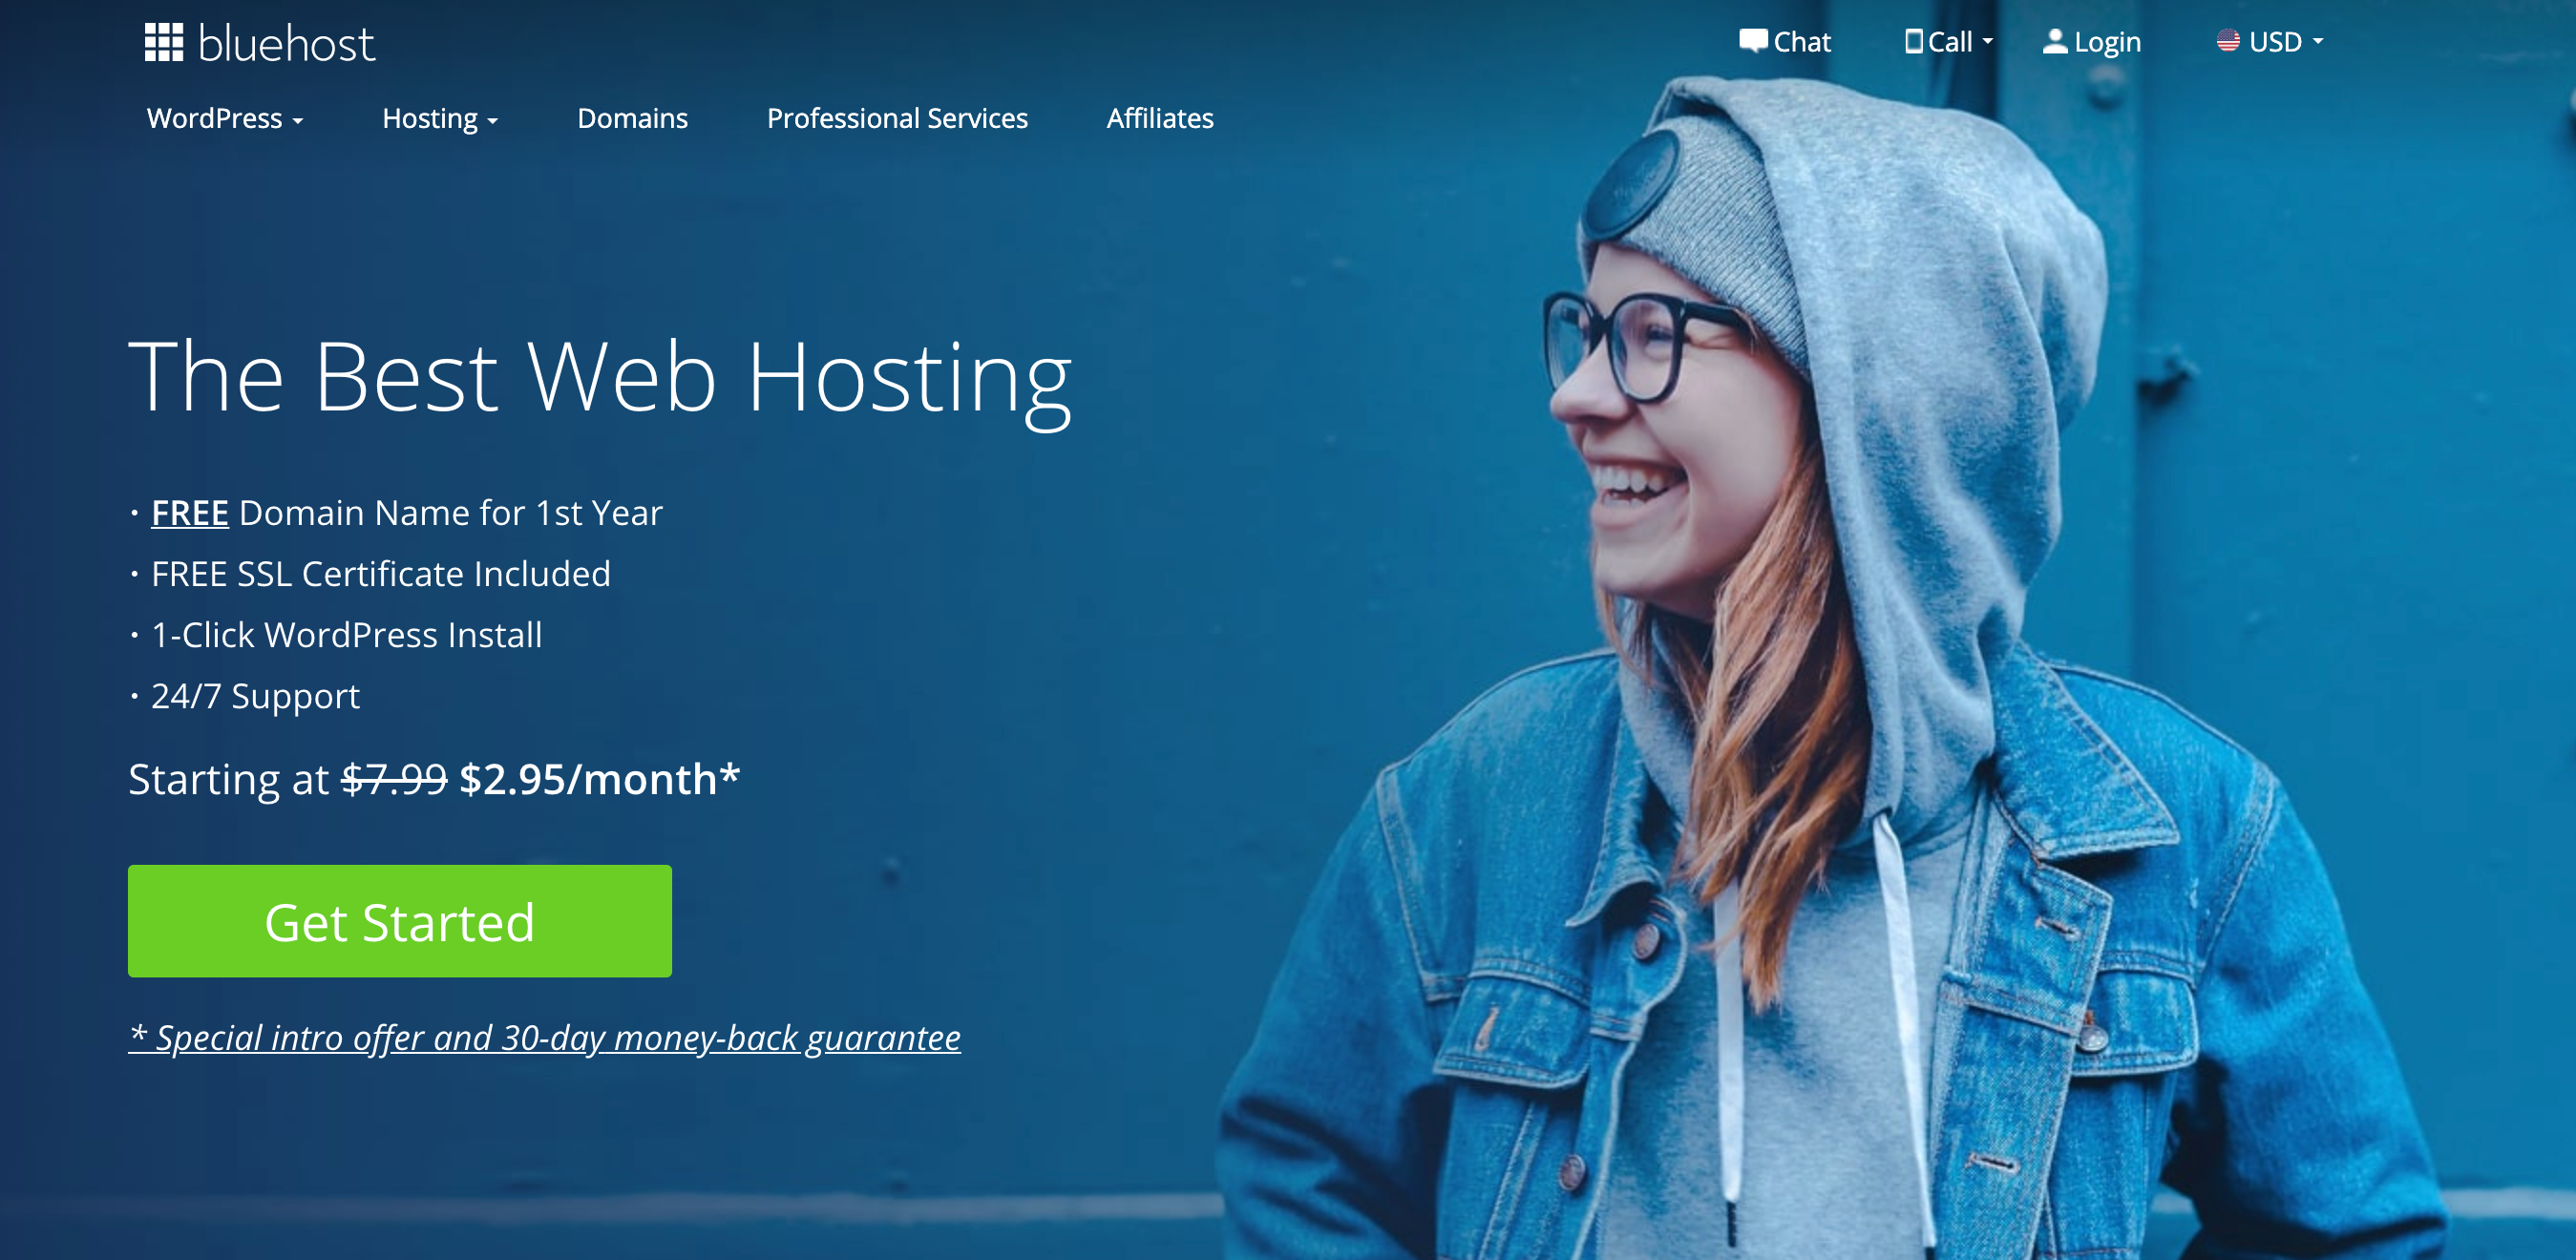 BlueHost Coupon Codes- Get It Fir $2.95